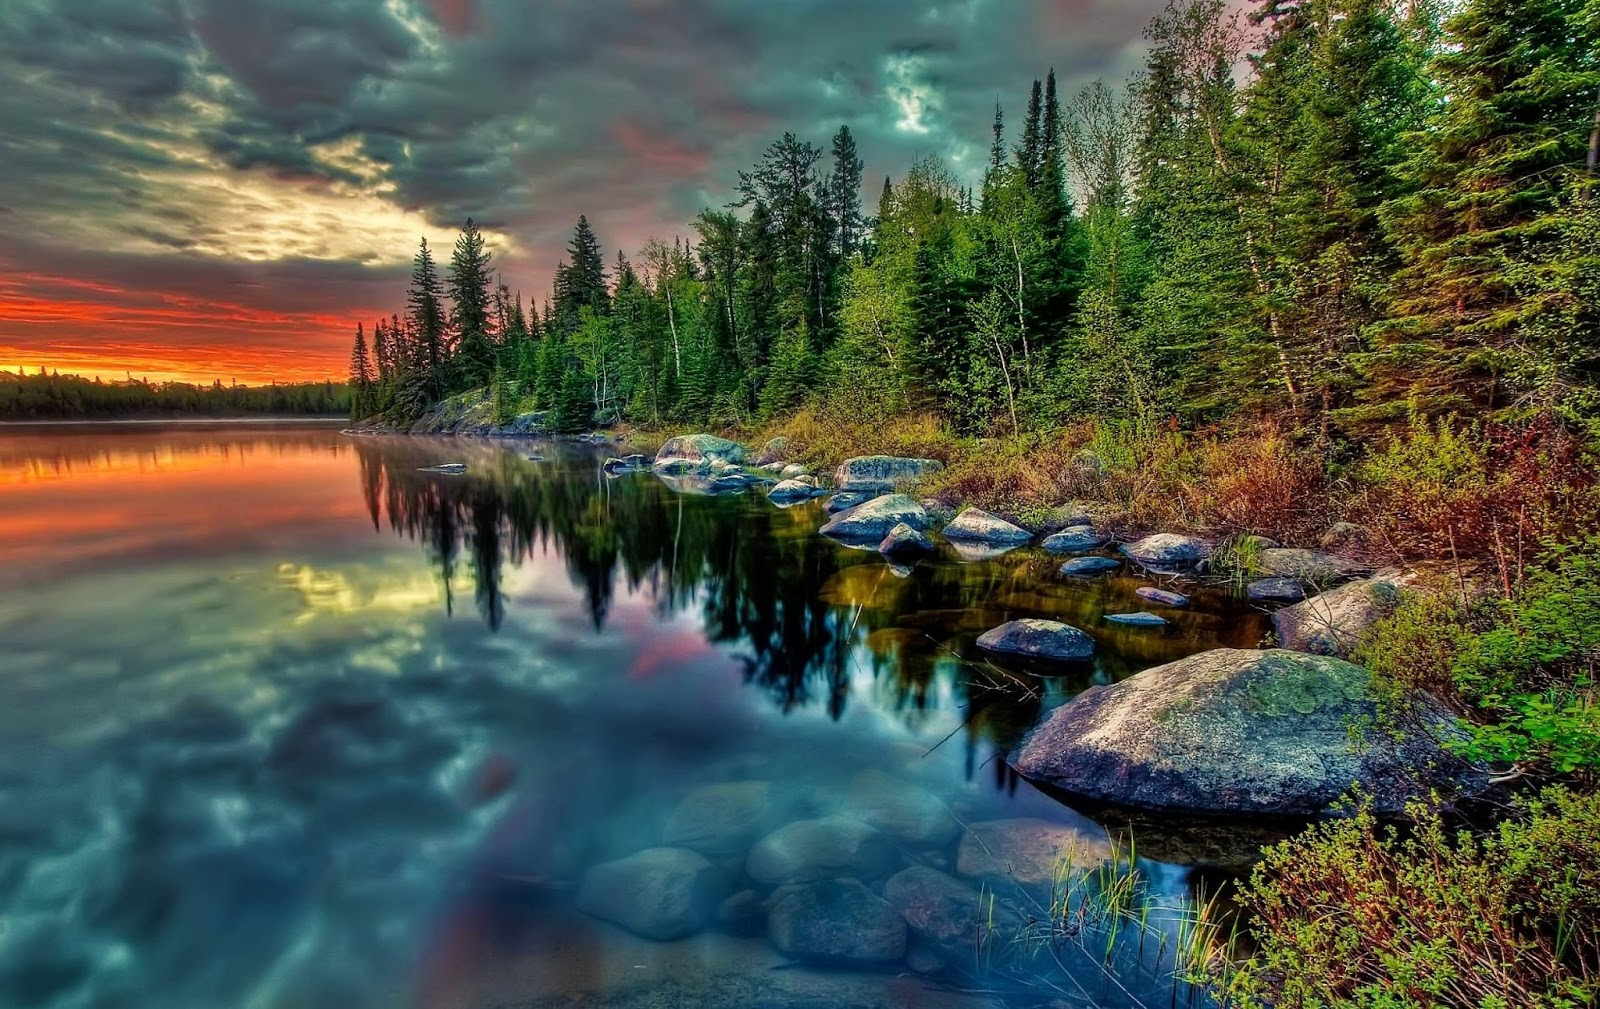 AMAZING NATURE HD WALLPAPERS 1080p ~ HD WALLPAPERS | 1600 x 1009 jpeg 499kB